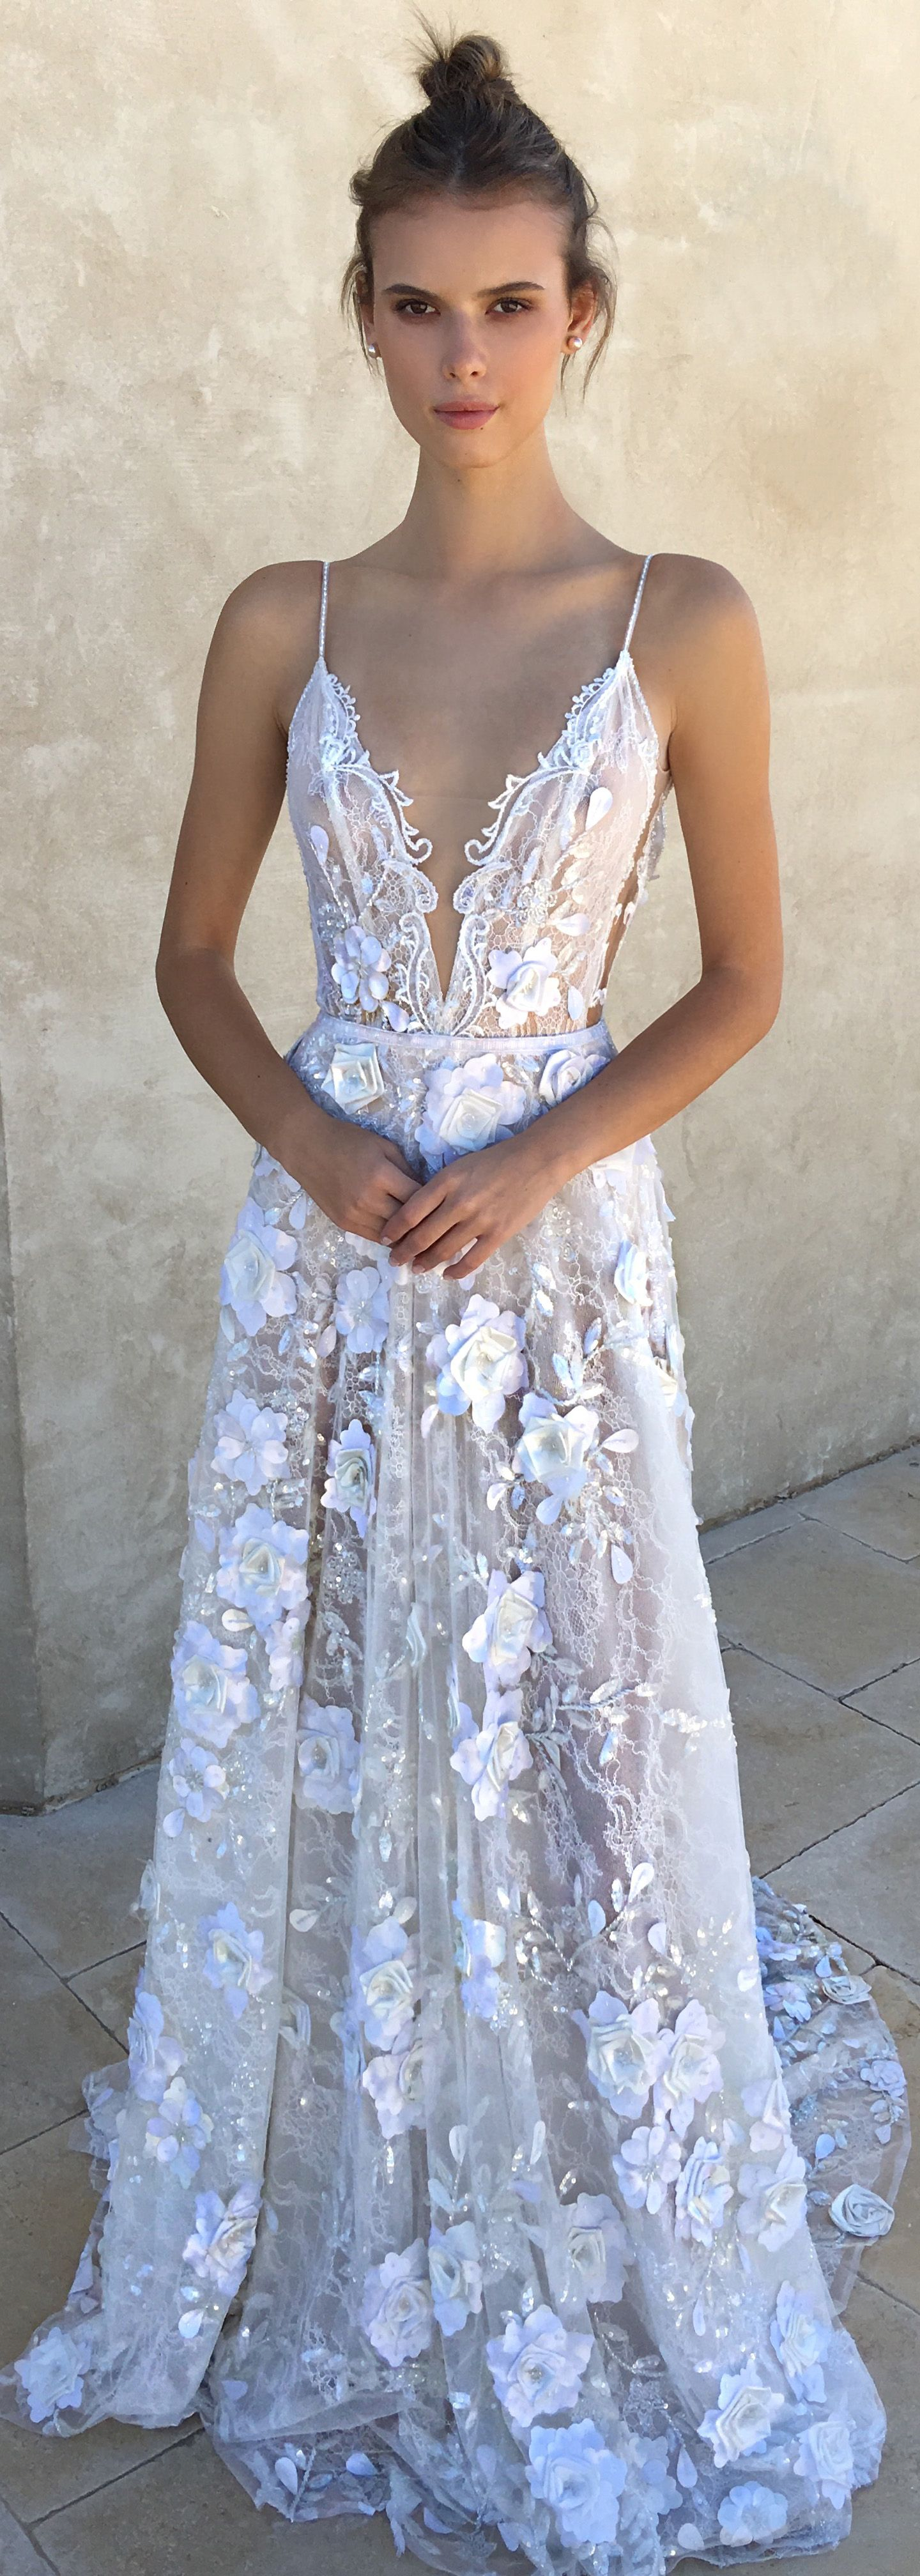 Berta Style 17 109 Now Available For Off The Rack Purchase At Our